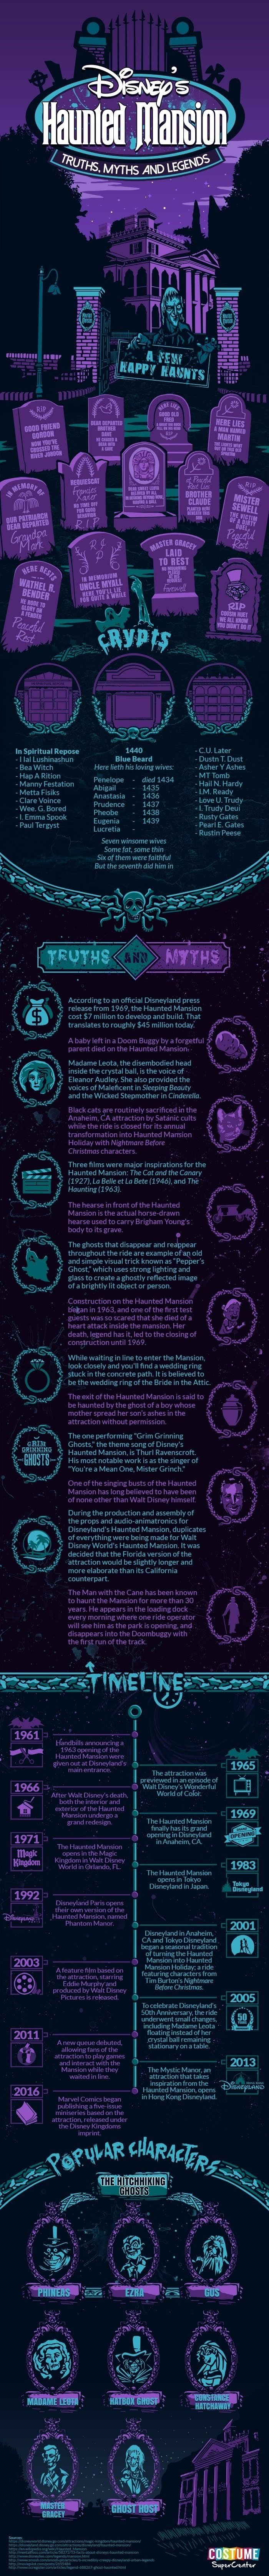 Disney's Haunted Mansion #nfographic